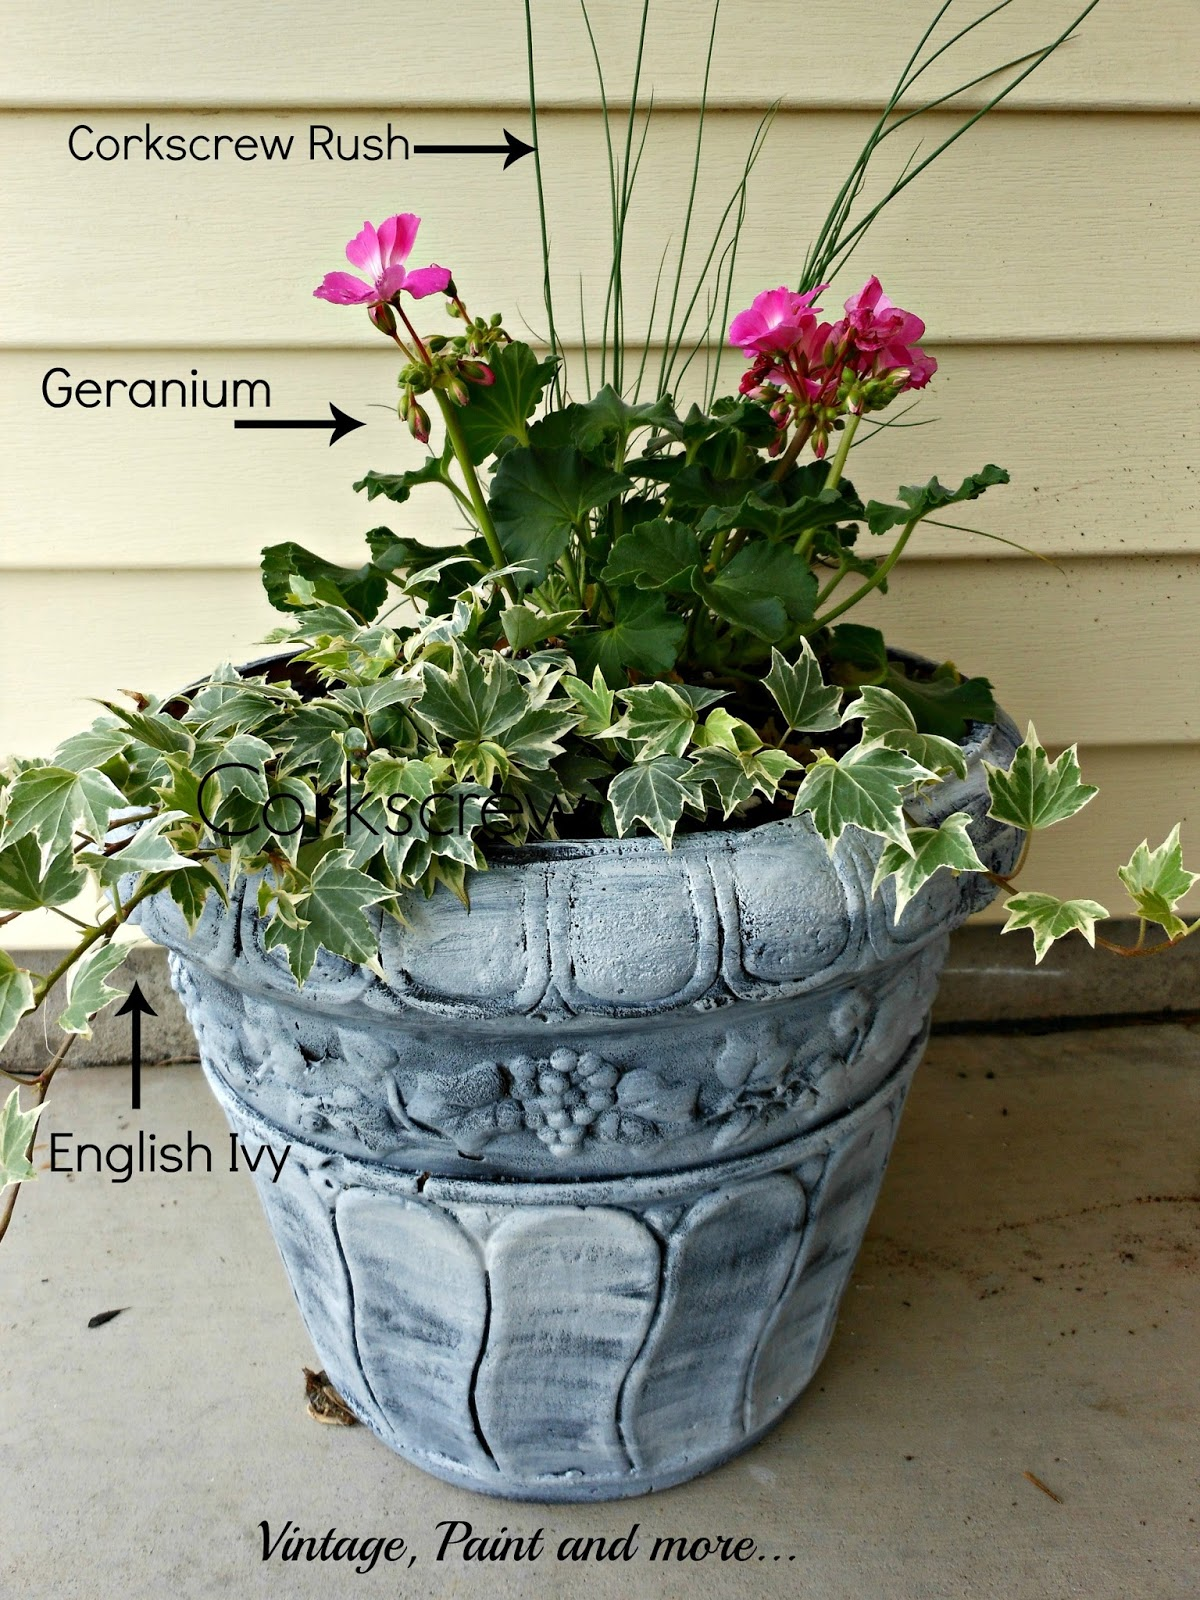 Vintage, Paint and more... plants to use in a sun loving container garden